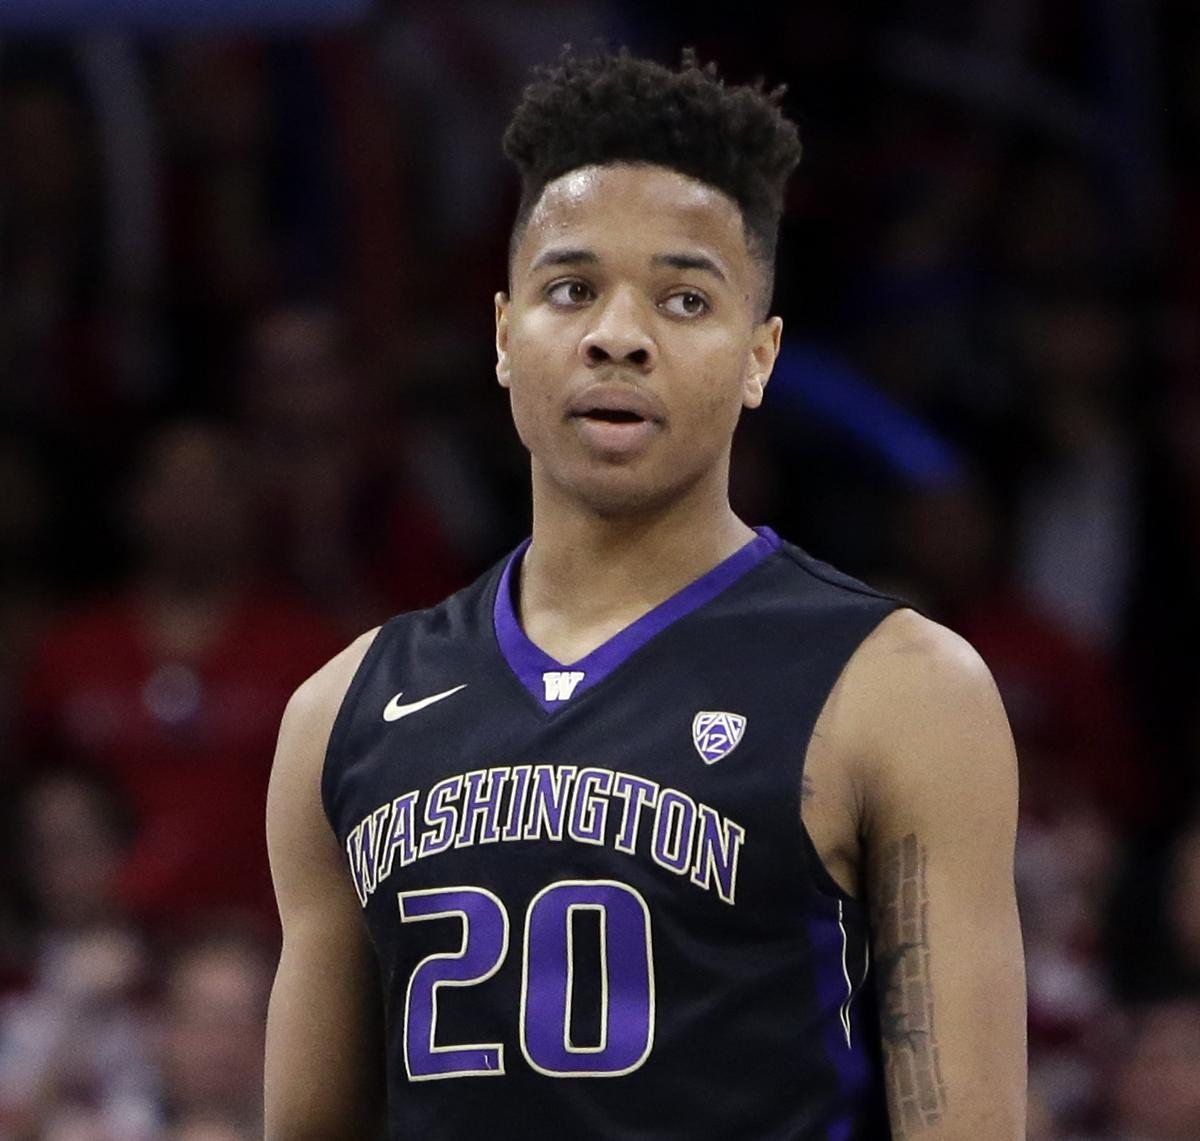 76ers select Washington guard Markelle Fultz No. 1 overall in NBA Draft